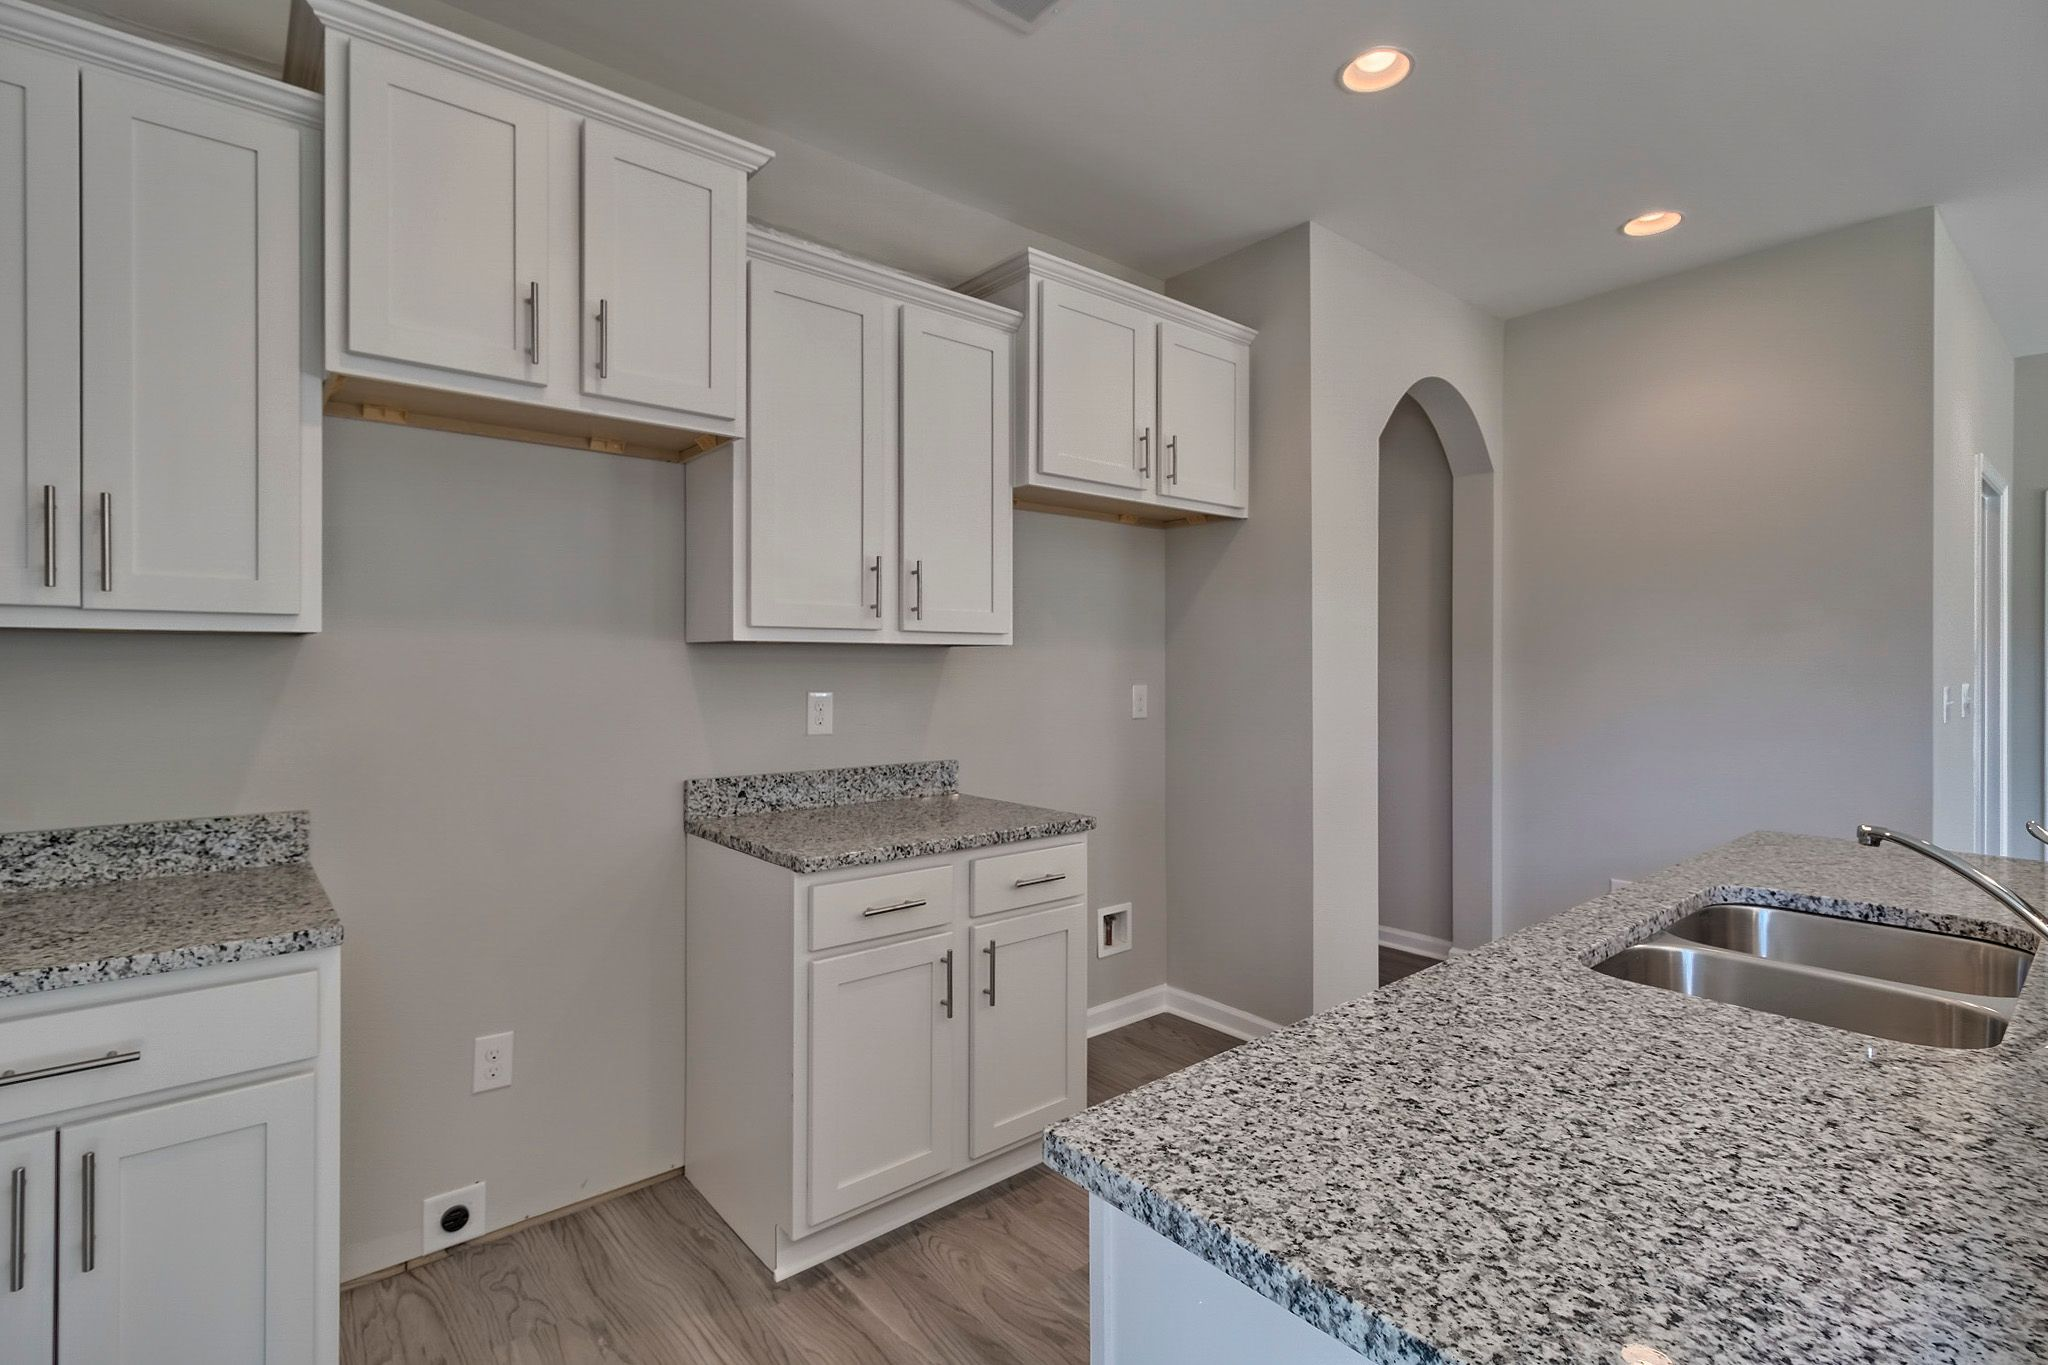 Kitchen featured in the Julie B By Great Southern Homes in Myrtle Beach, SC